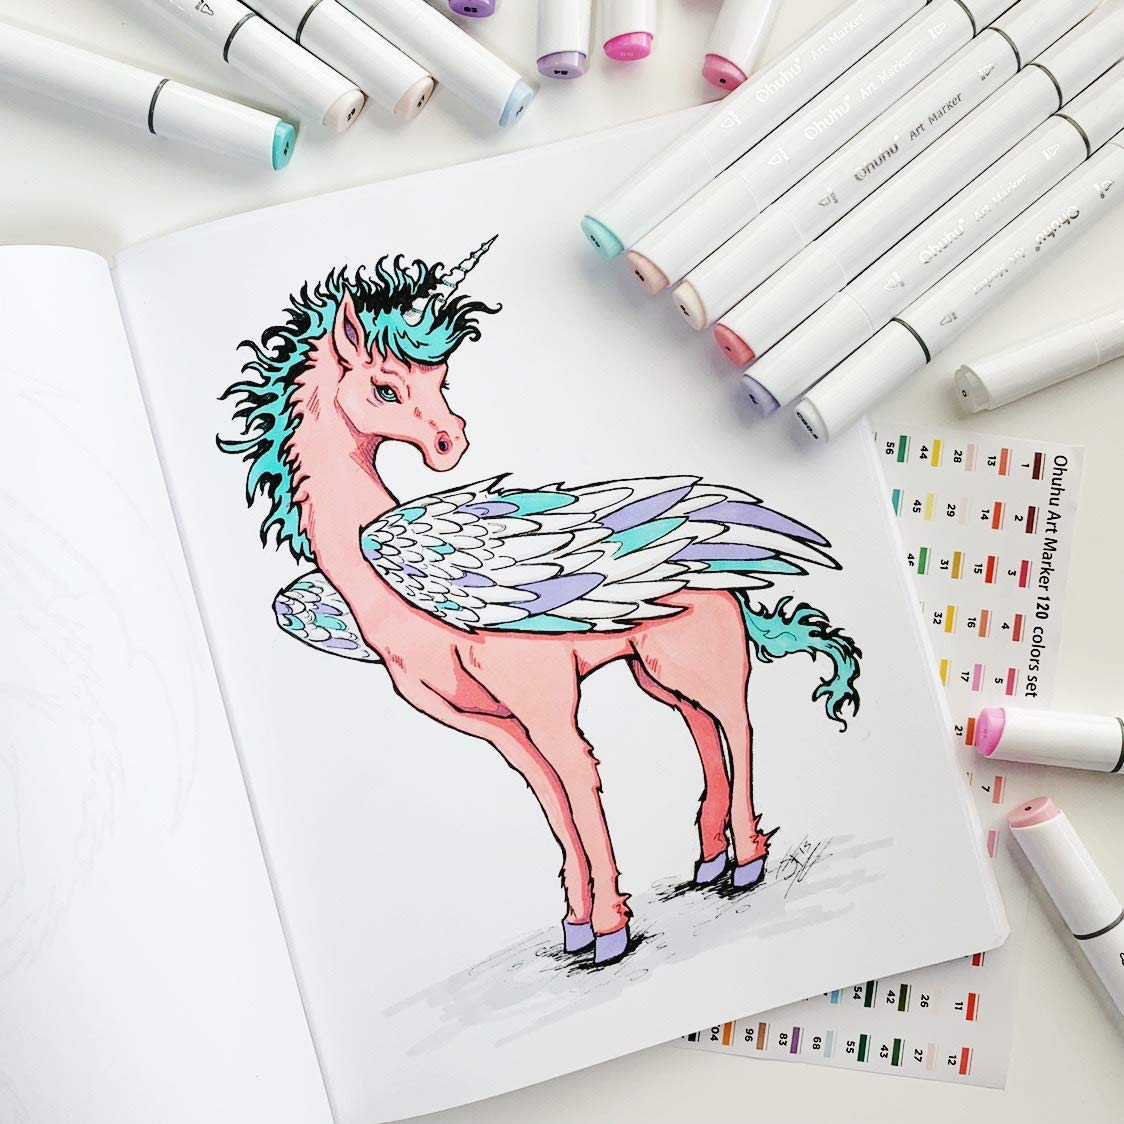 Ohuhu 120 Colors Dual Tips Sketch Marker Pens Art Markers Set with Carrying Case for Drawing Sketching Adult Coloring Books, Great Mothers' Day Gift Idea by Ohuhu (Image #4)